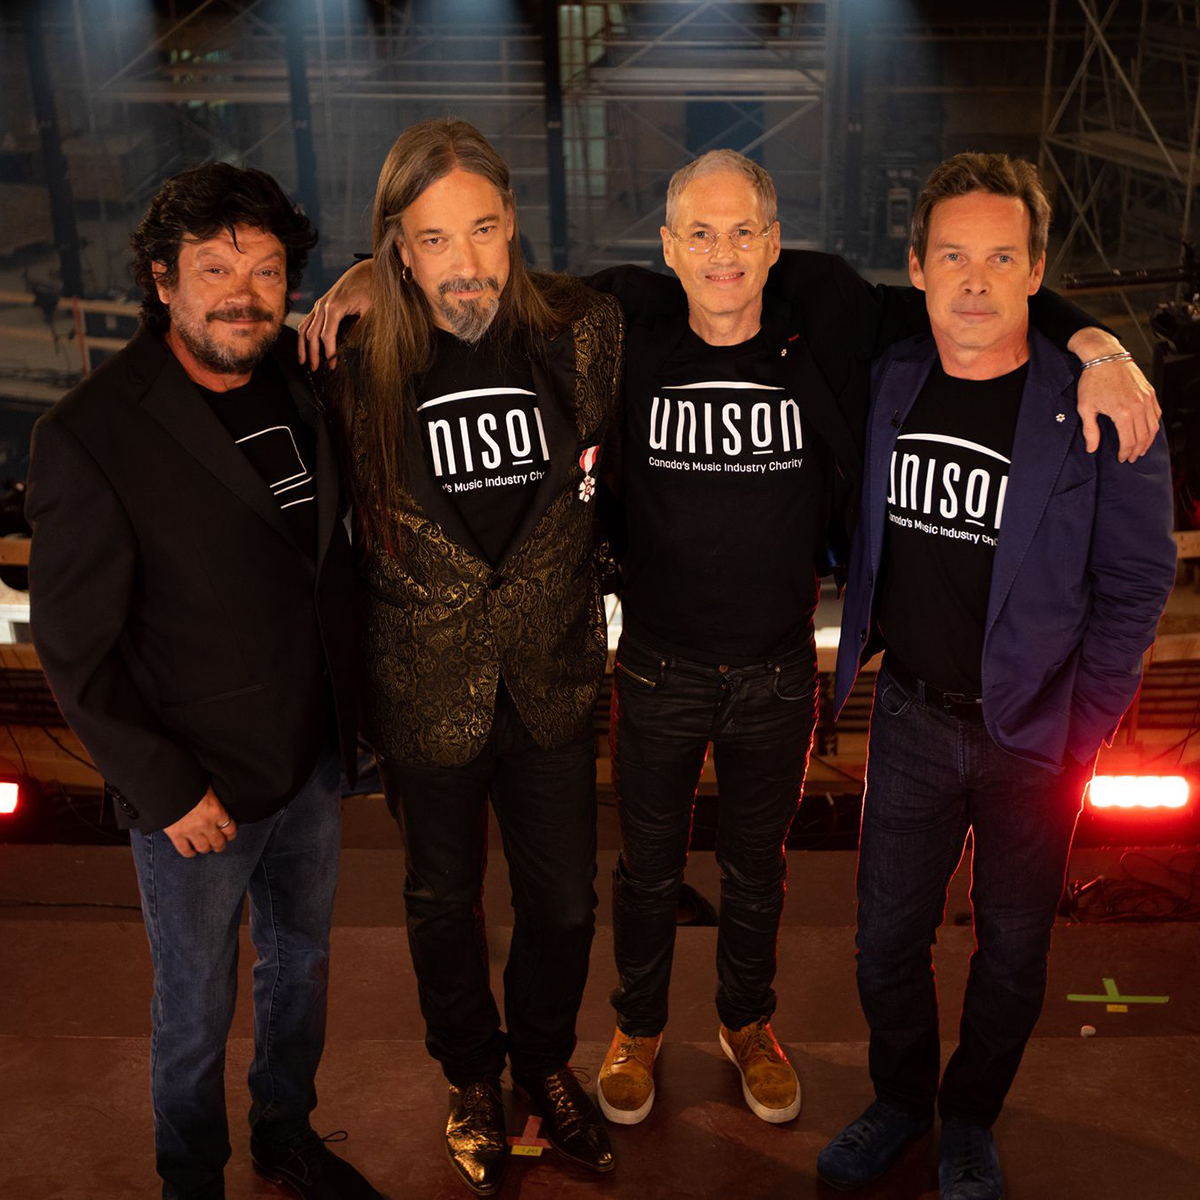 The Tragically Hip Launch Sale Of The Unison T-Shirt